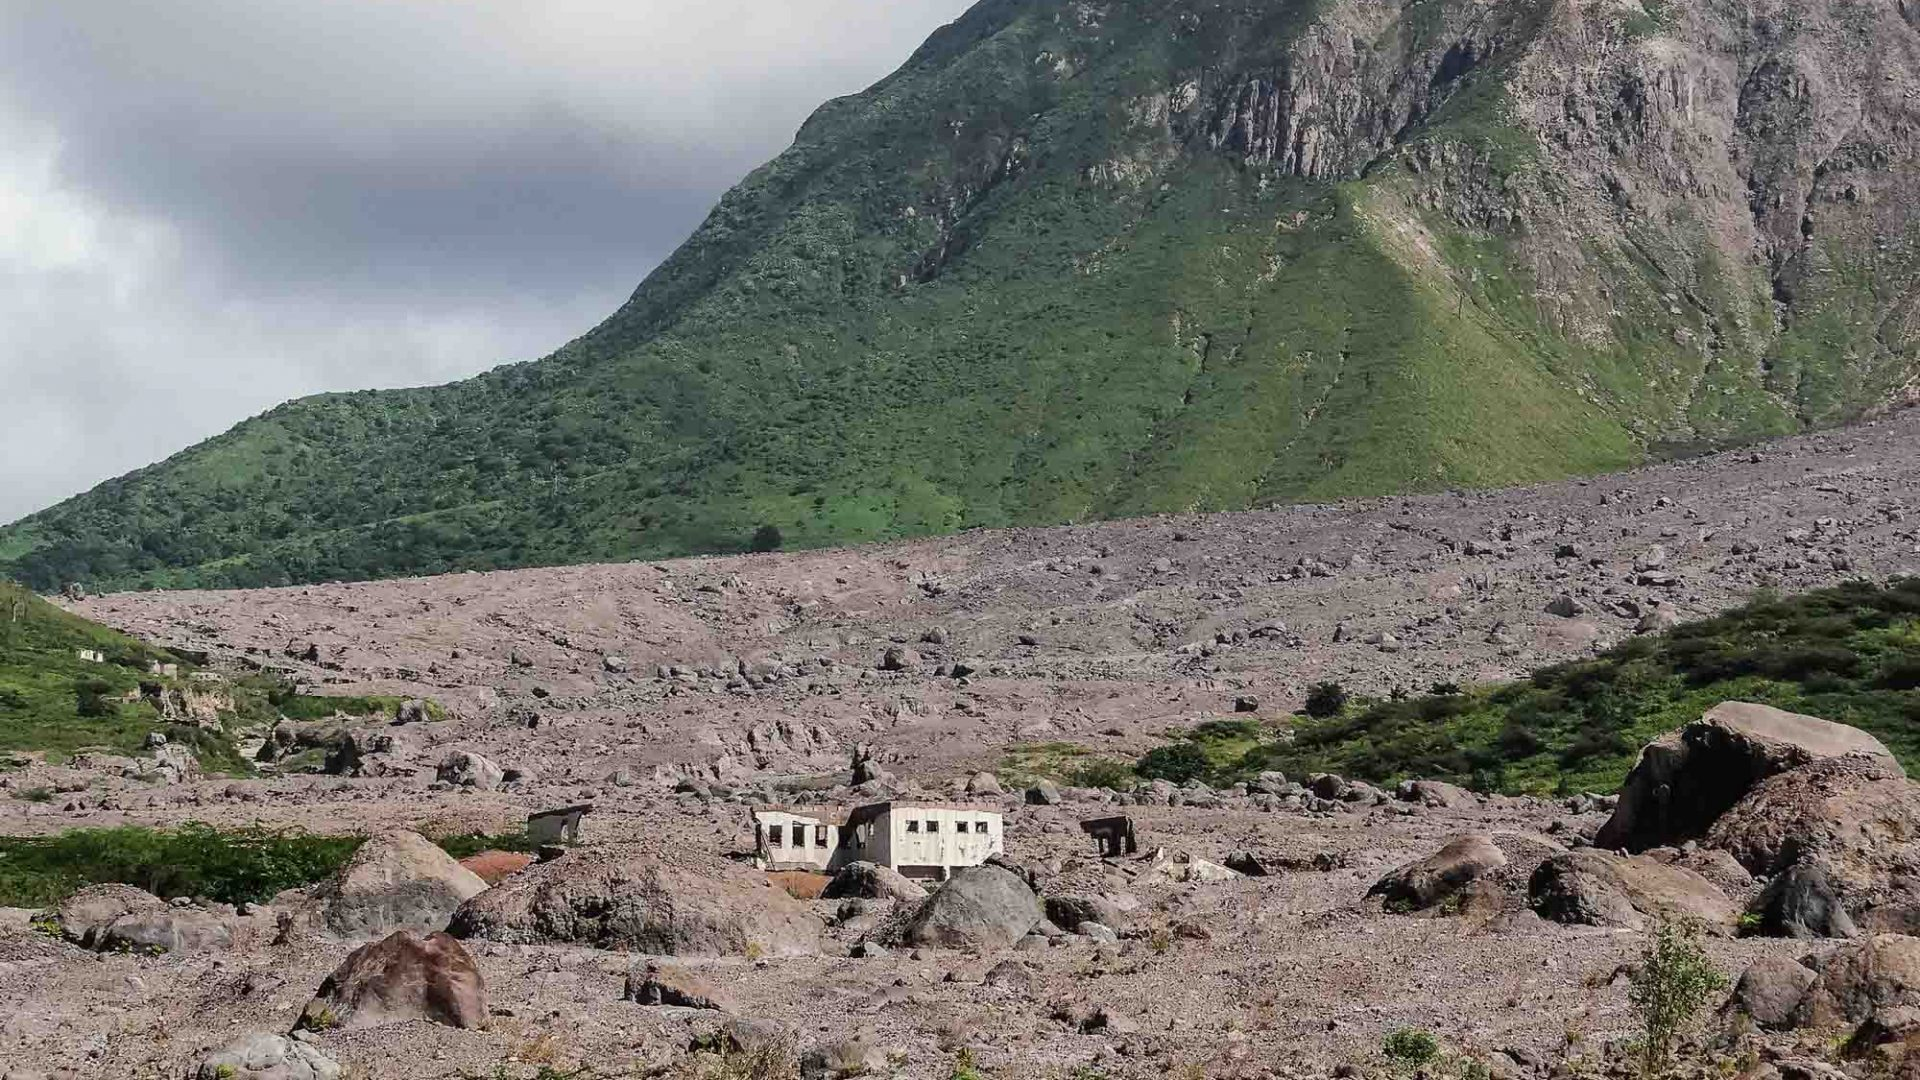 Montserrat's Soufrière Hills volcano stands behind an abandoned house in what has become known as a modern-day Pompeii.